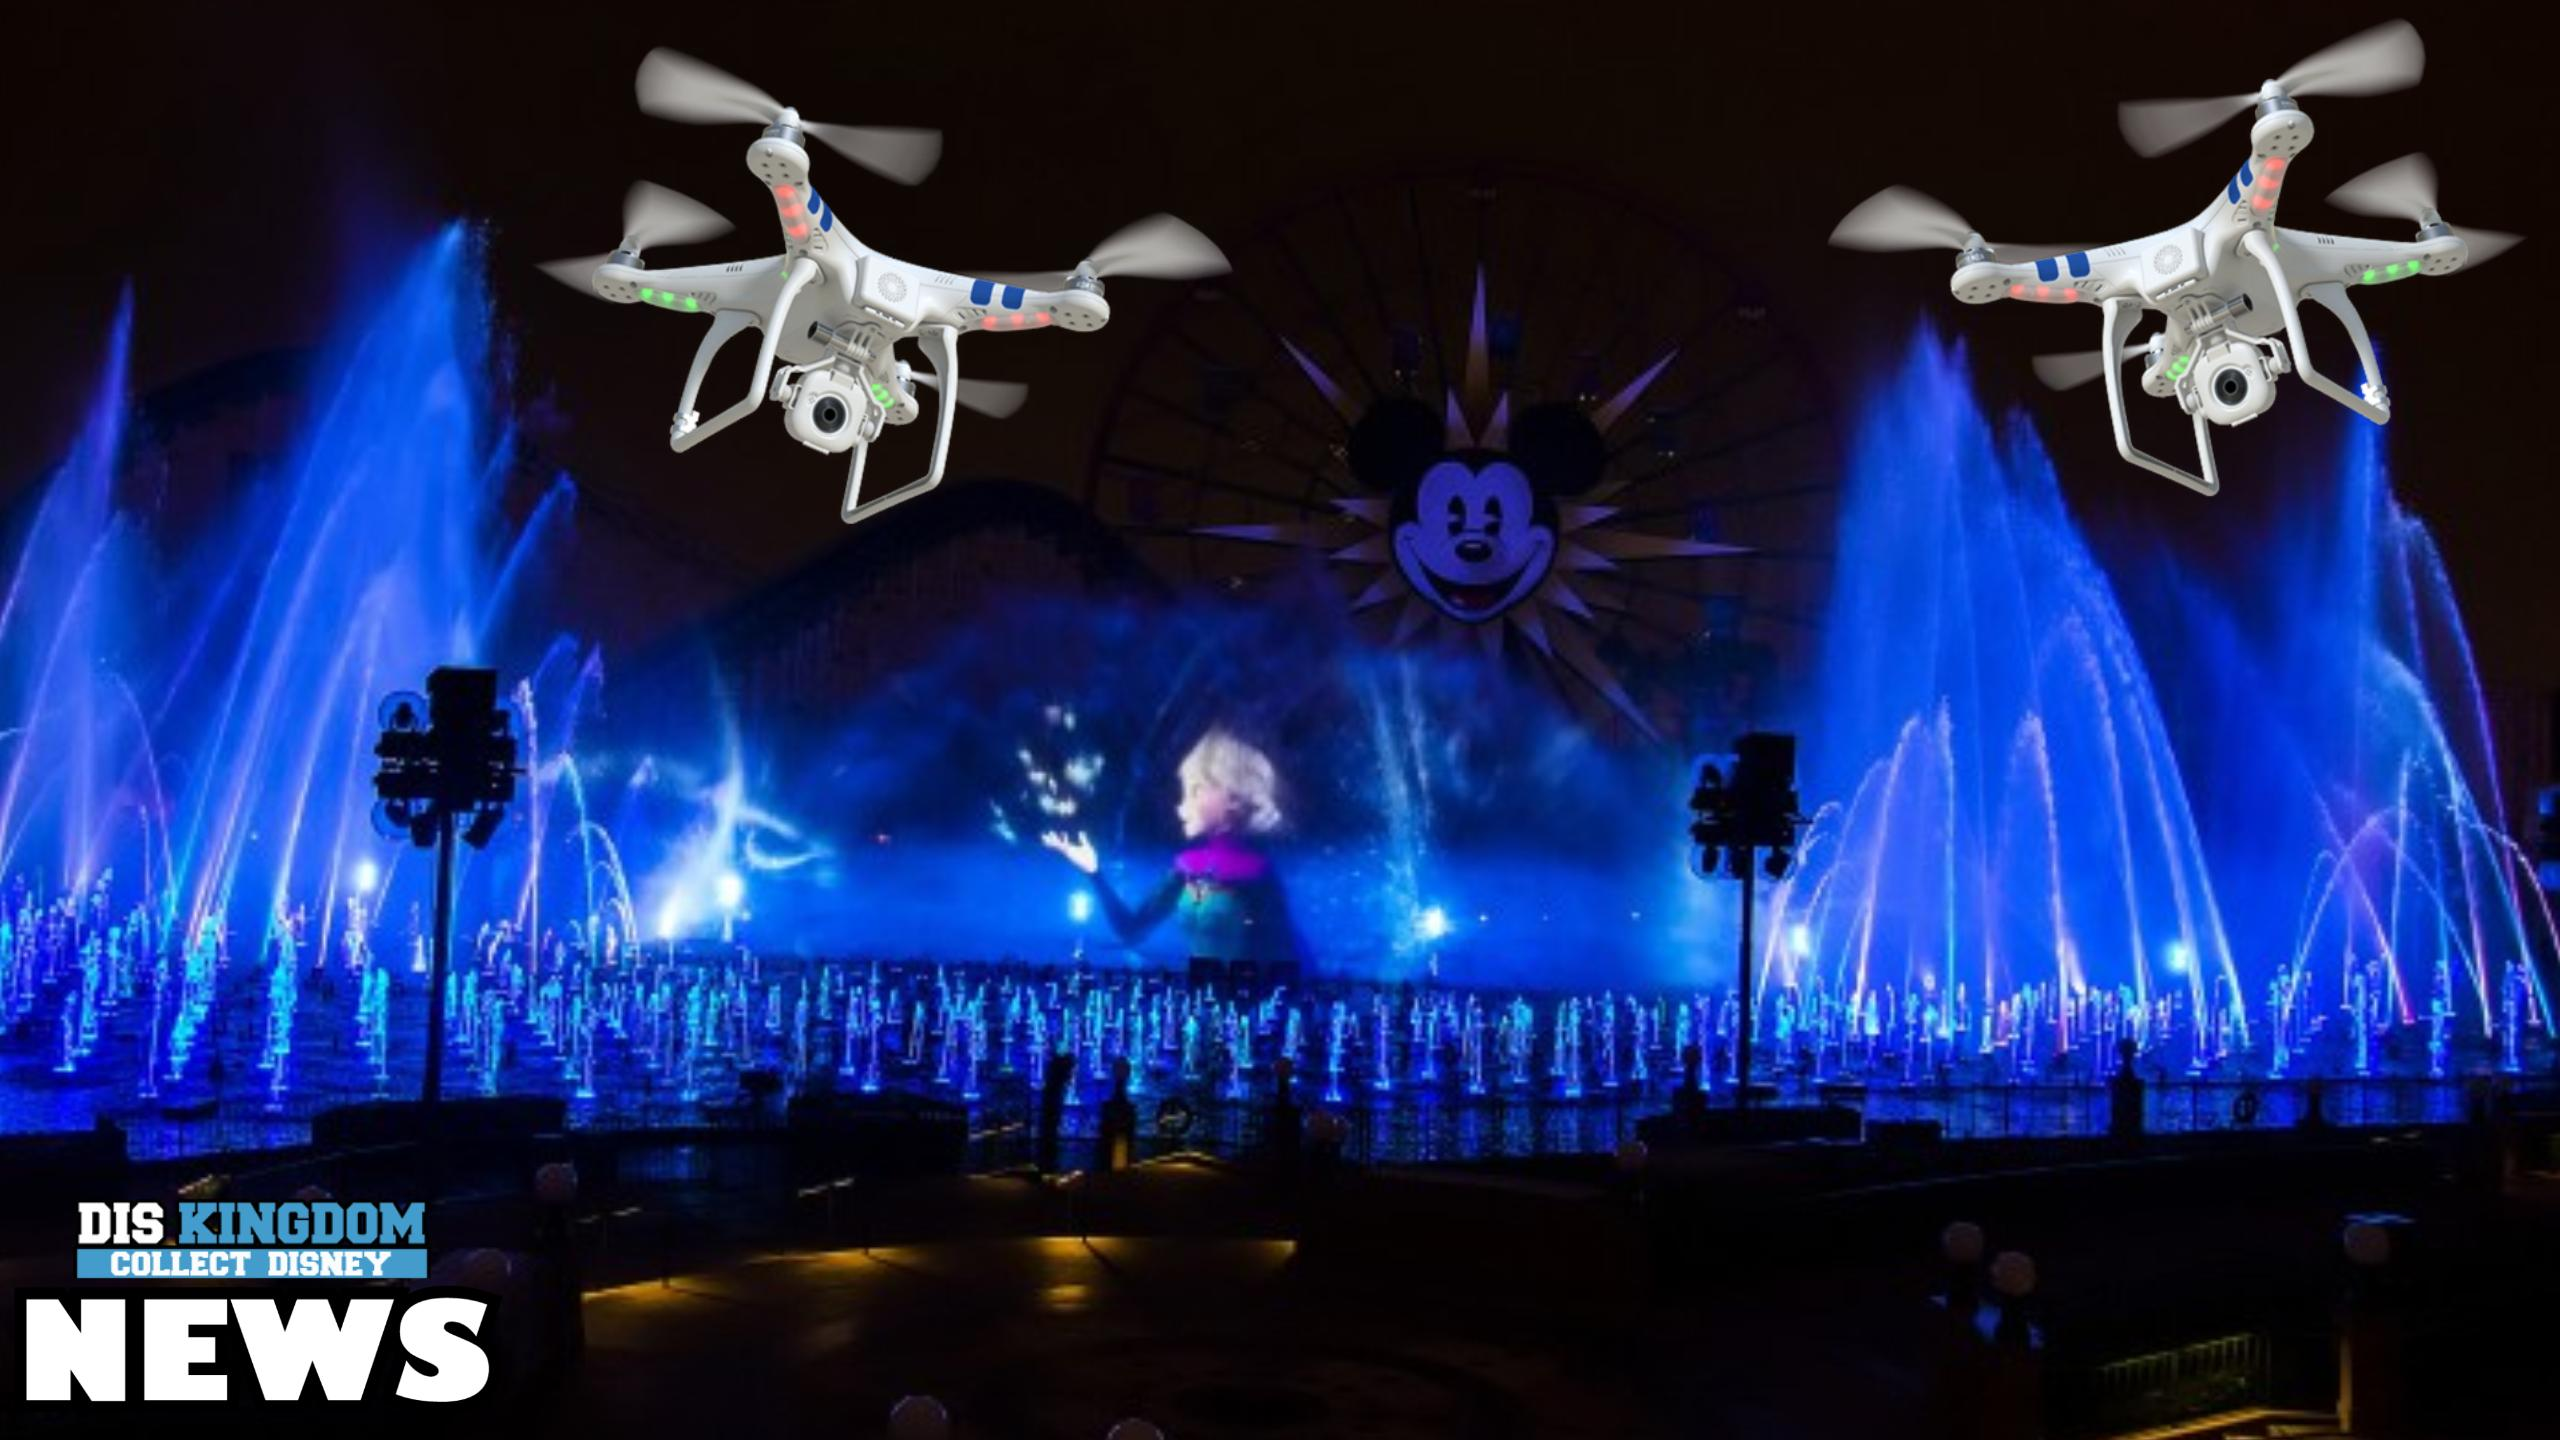 Could Drones Be Part Of Future Live Firework Shows At Disney Theme Parks?